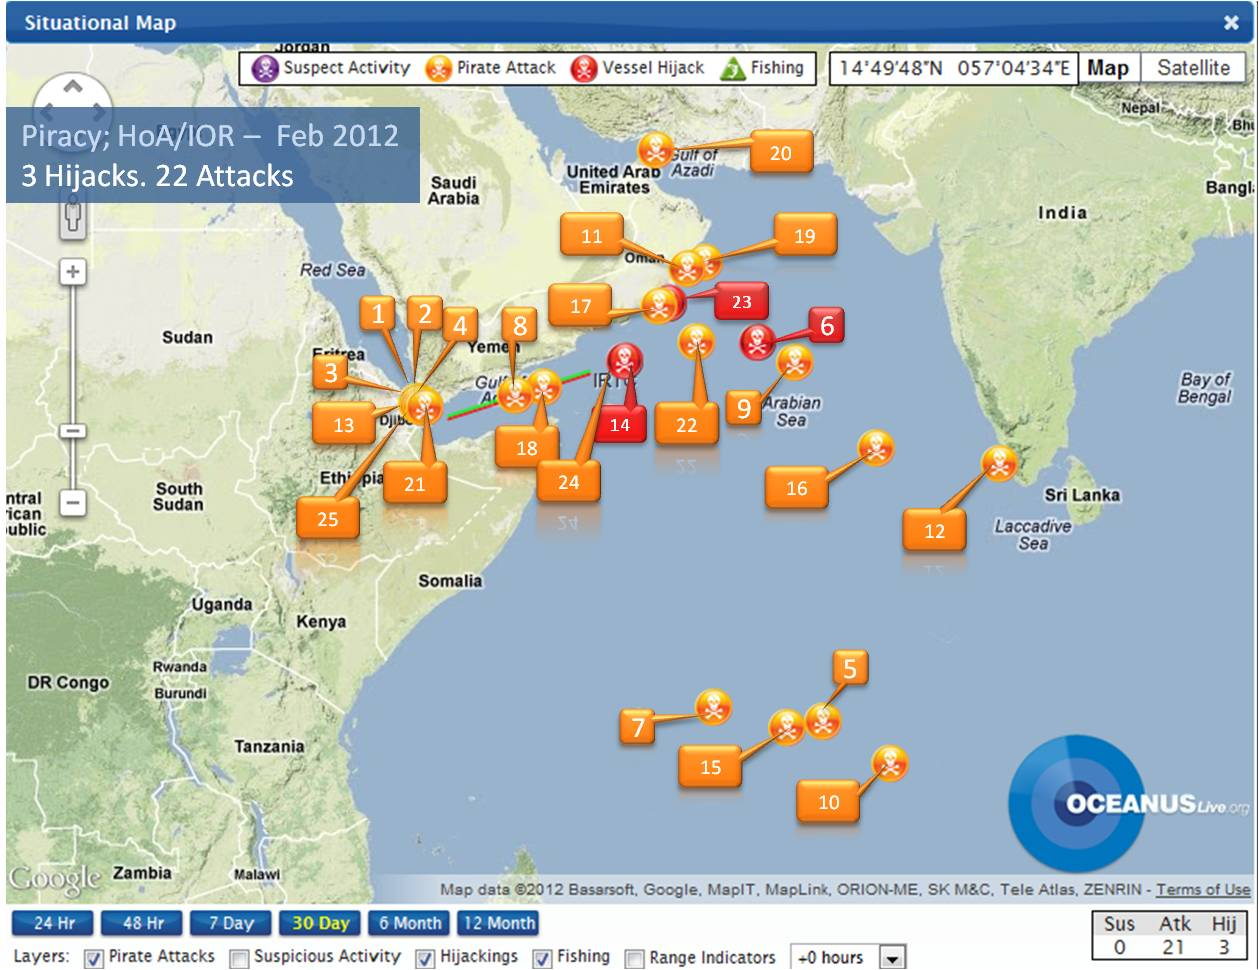 piracy in indian ocean Somali pirate operate far beyond somali national waters and into the indian  ocean, the red sea and the gulf of aden somali pirate attacks have been  reported.